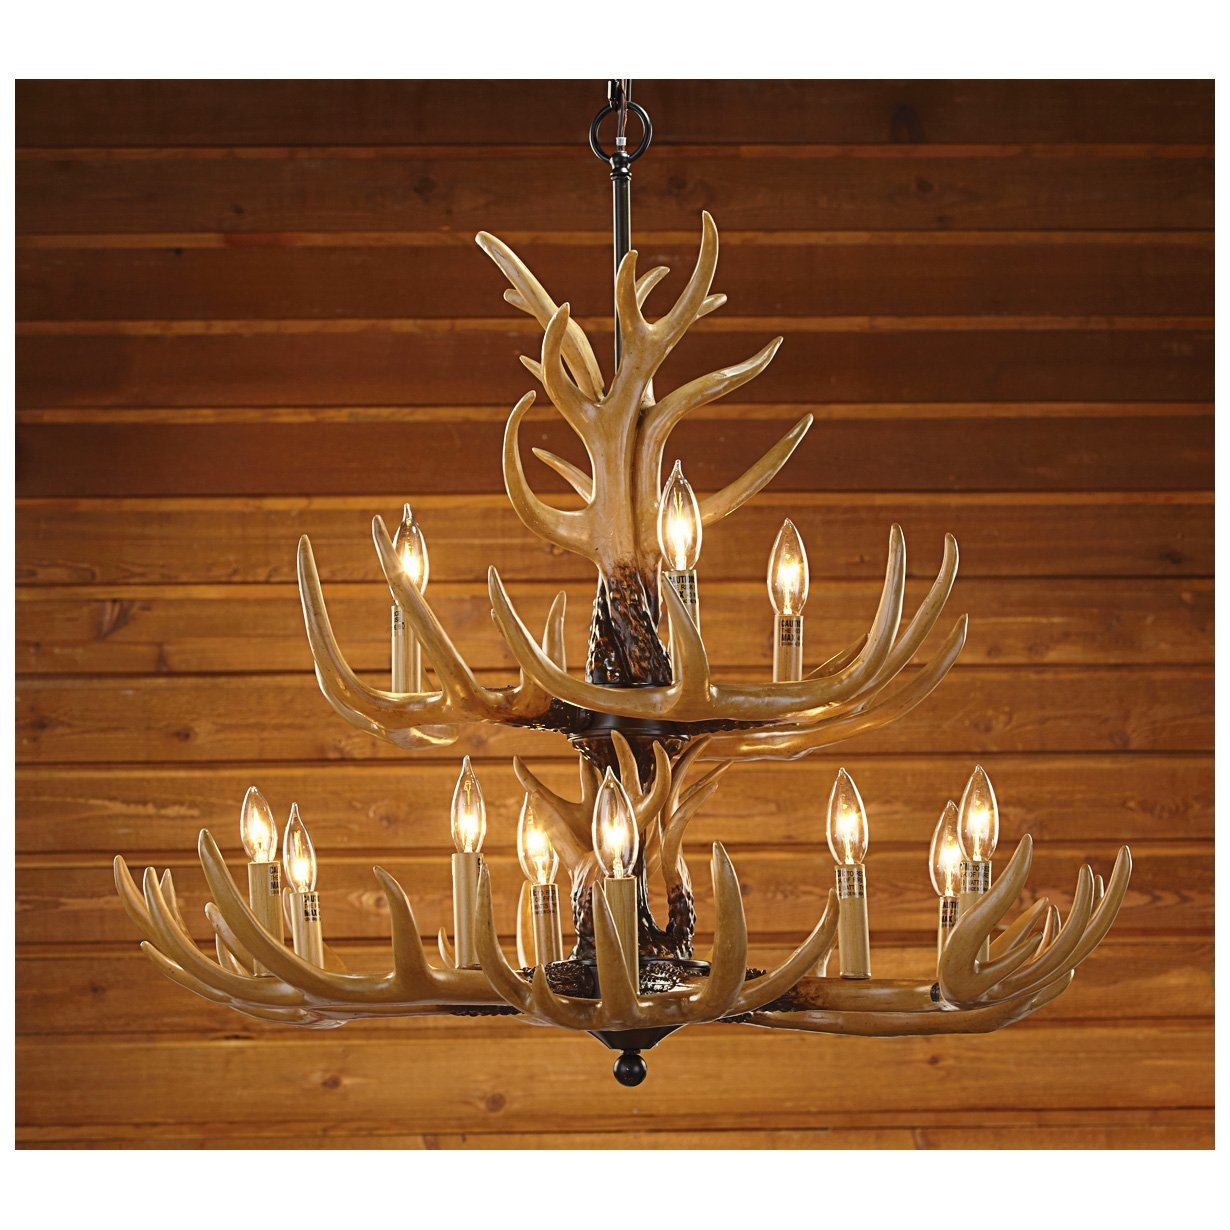 Rustic lodge log cabin themed bedding sets cabinlodge style decor antler chandelier ideal for bedrooms aloadofball Image collections